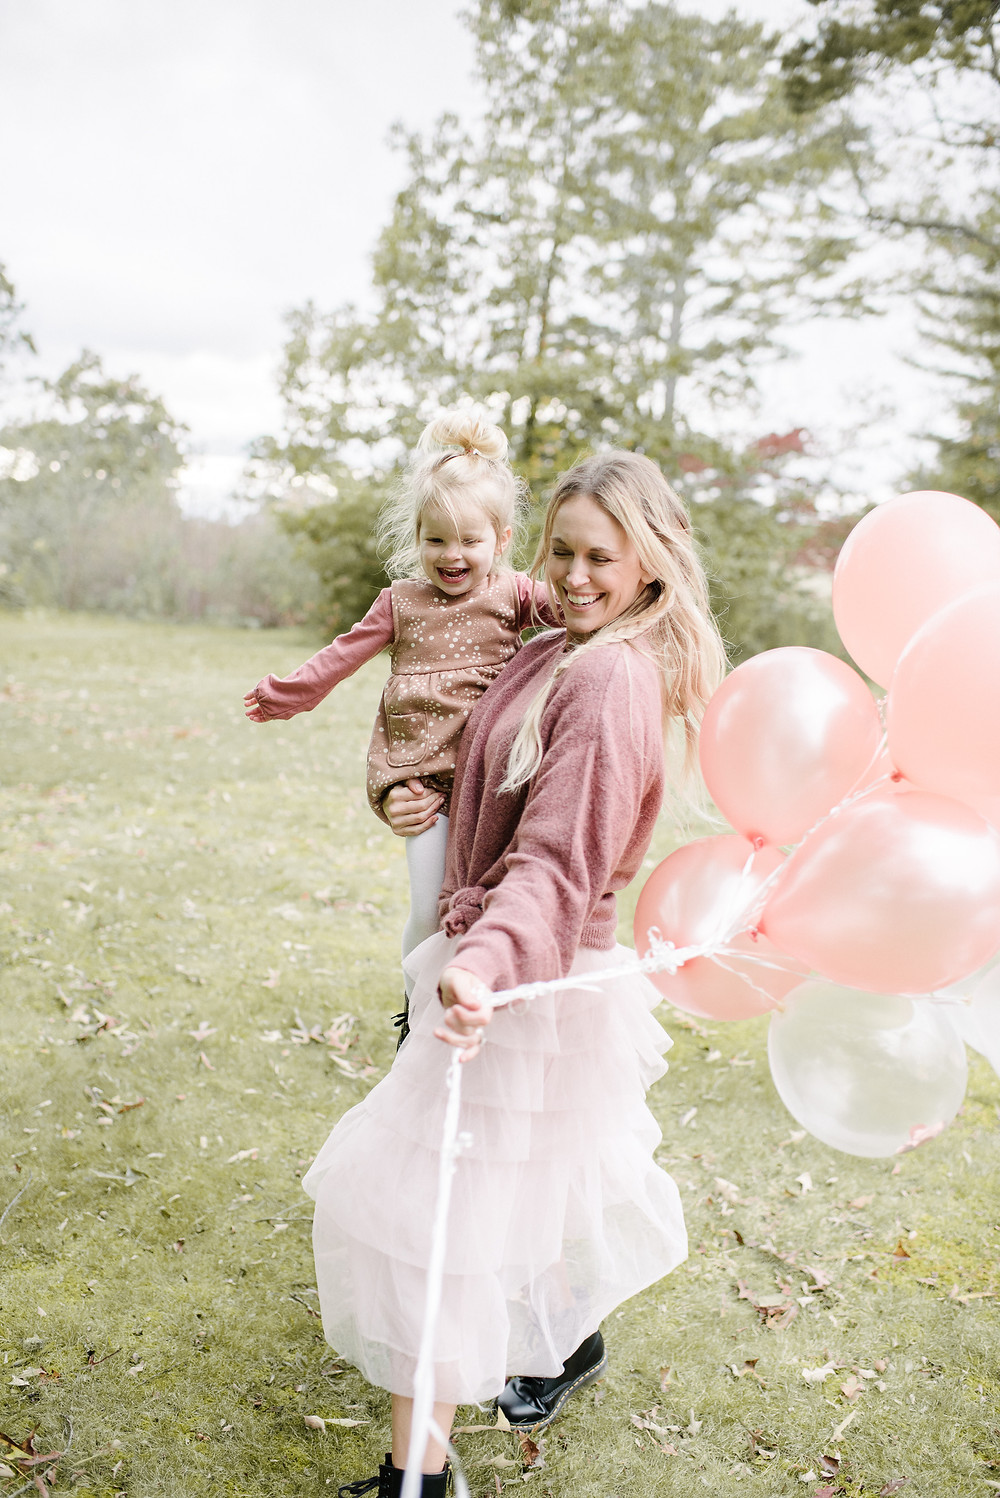 Mom and daughter twirl with pink balloons.